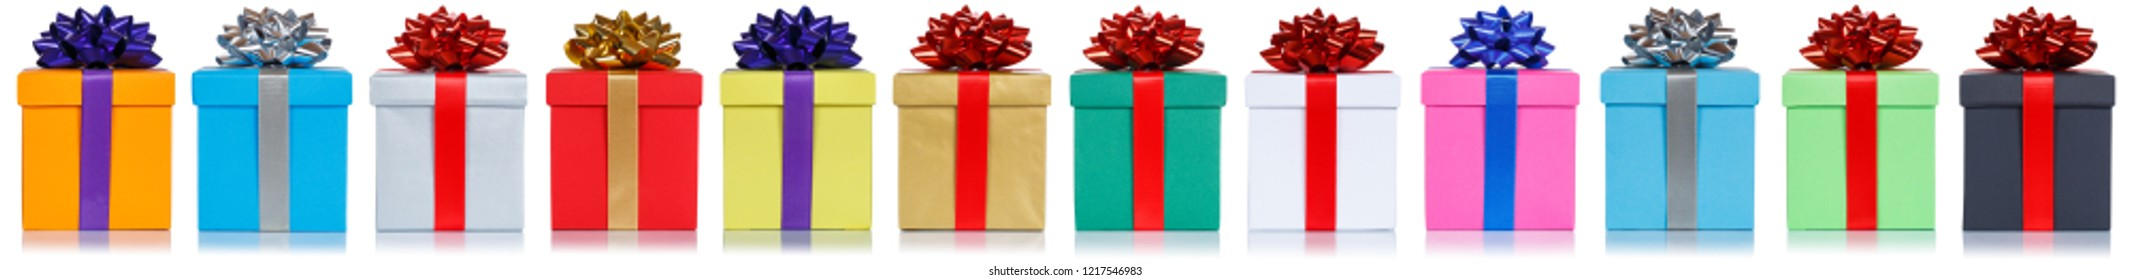 Gifts gift christmas birthday presents in a row isolated on a white background